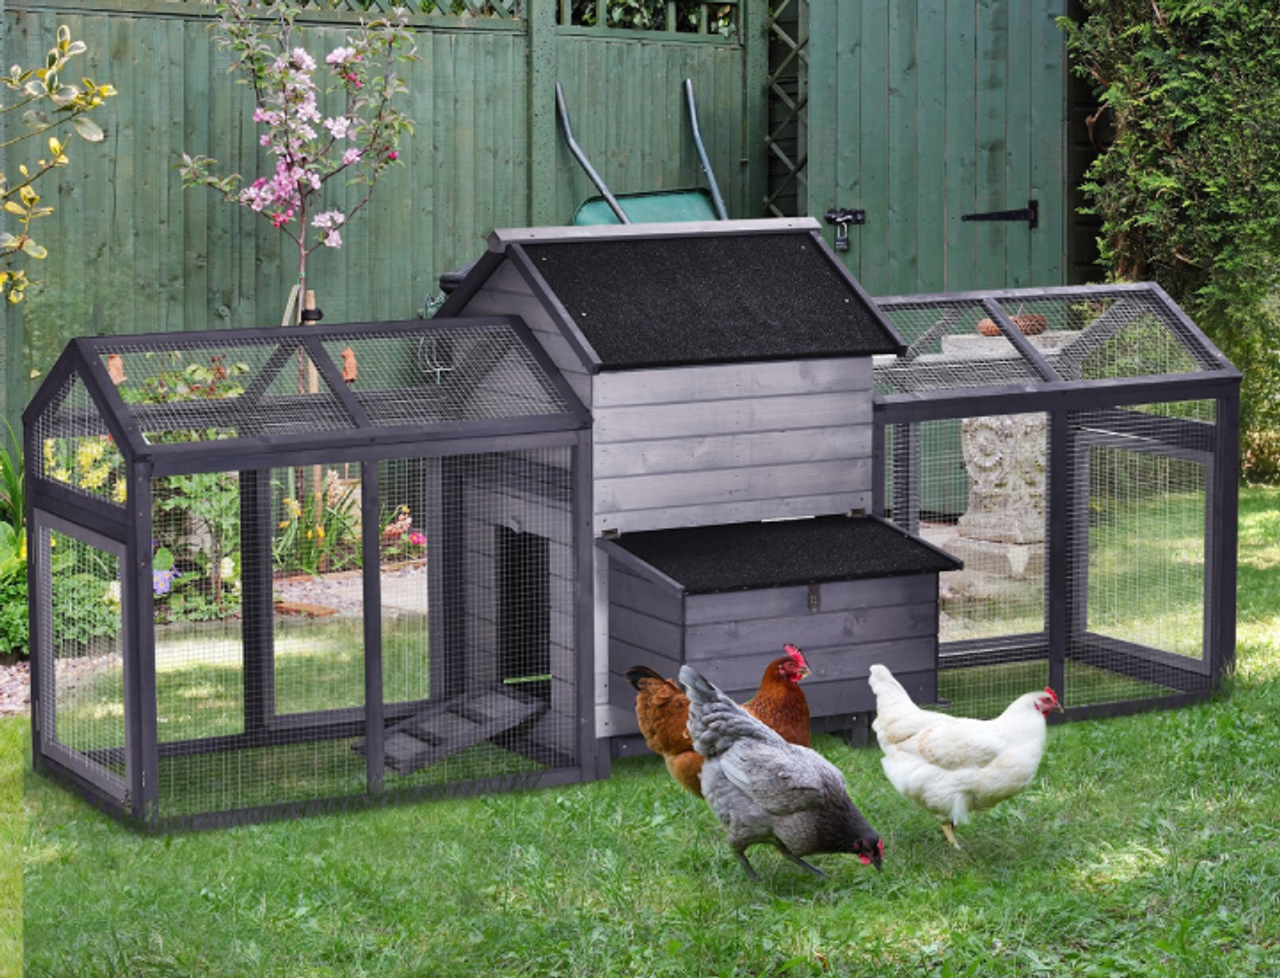 Outdoor Chicken Coop with Double Run & Nesting Box